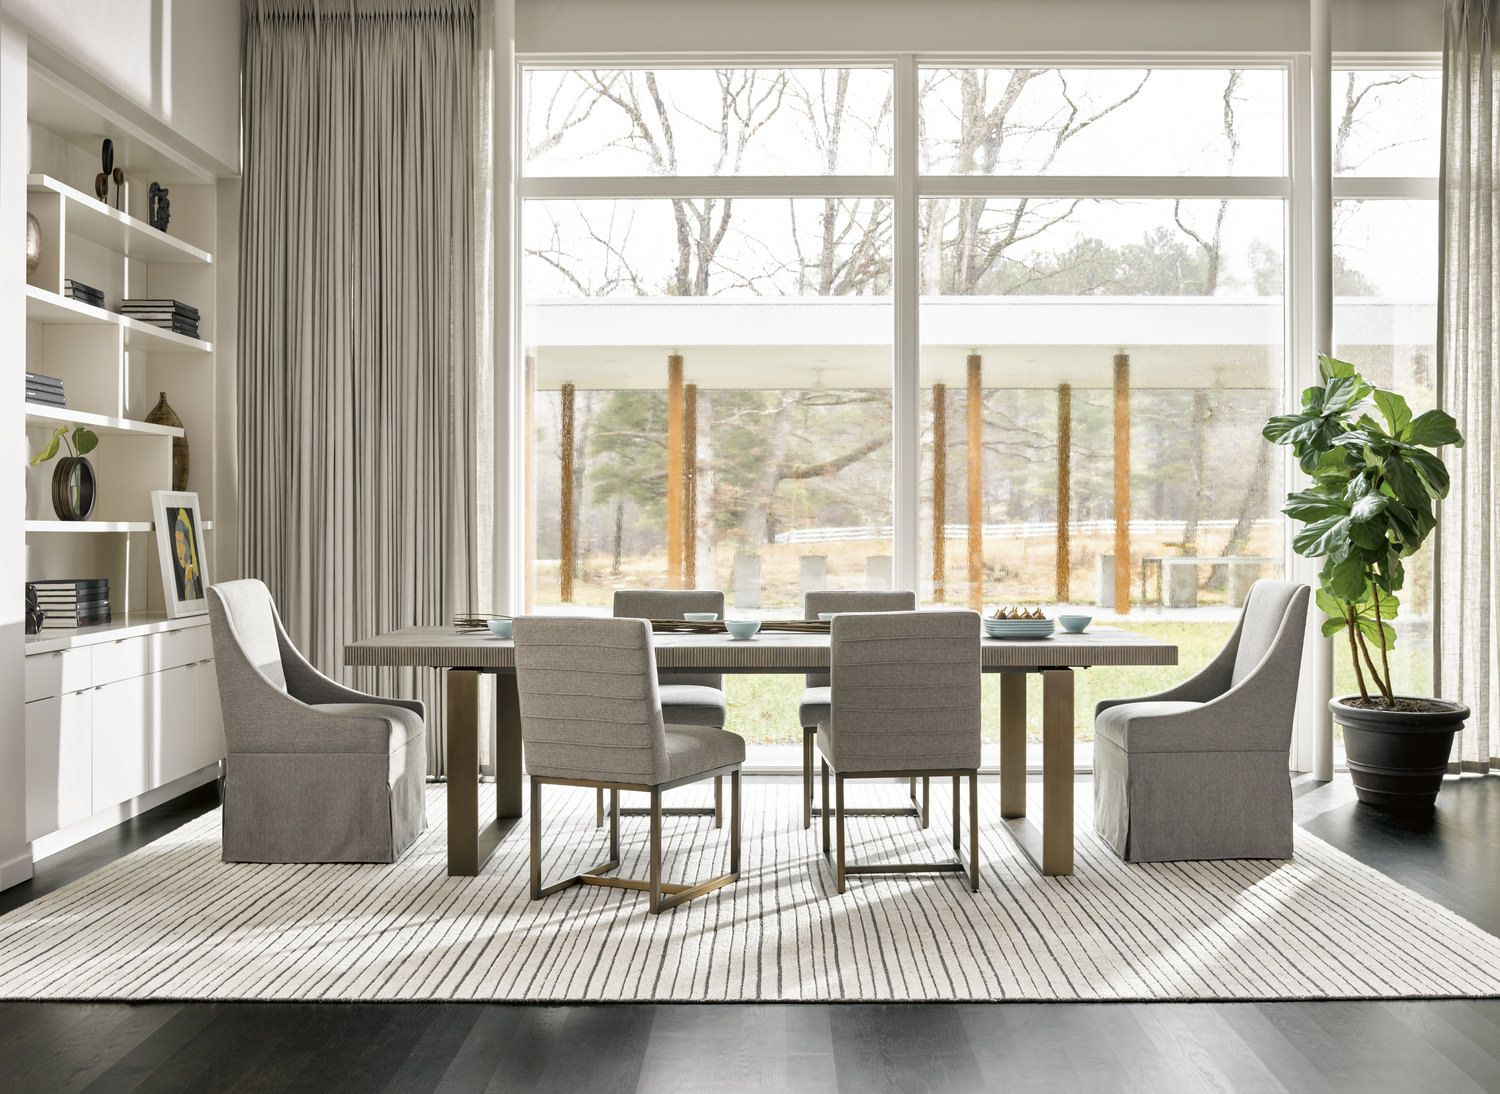 Attractive Modern Dining Table With 4 Chairs | HOM Furniture | Furniture Stores In Minneapolis  Minnesota U0026